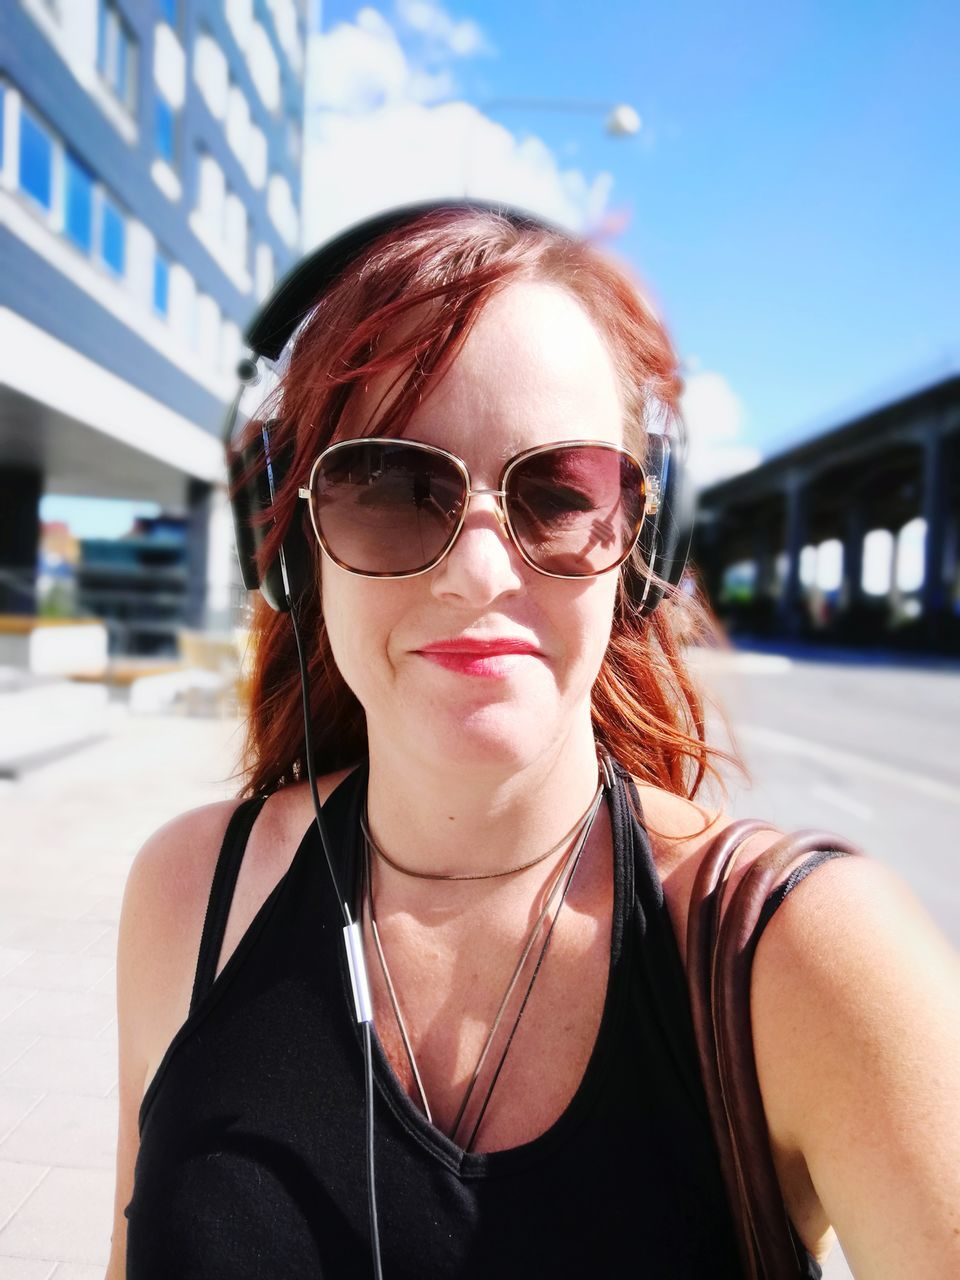 Close-Up Portrait Of Young Woman Wearing Sunglasses And Headphones On Road